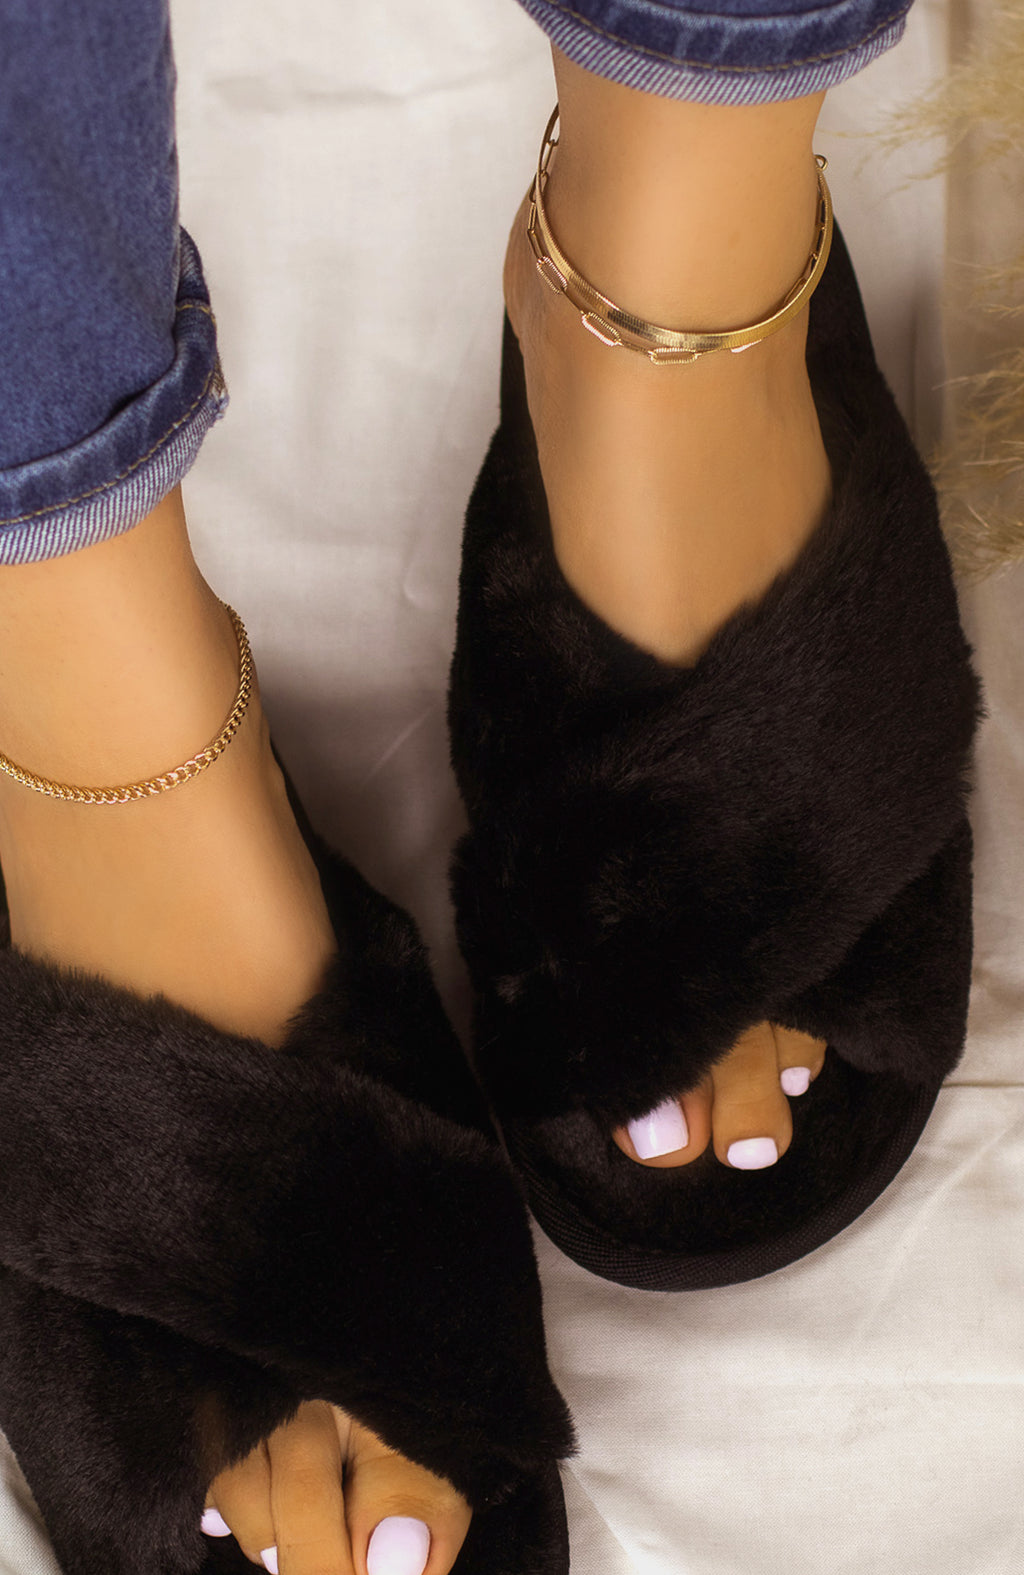 Easy Lounging - Black Sandals